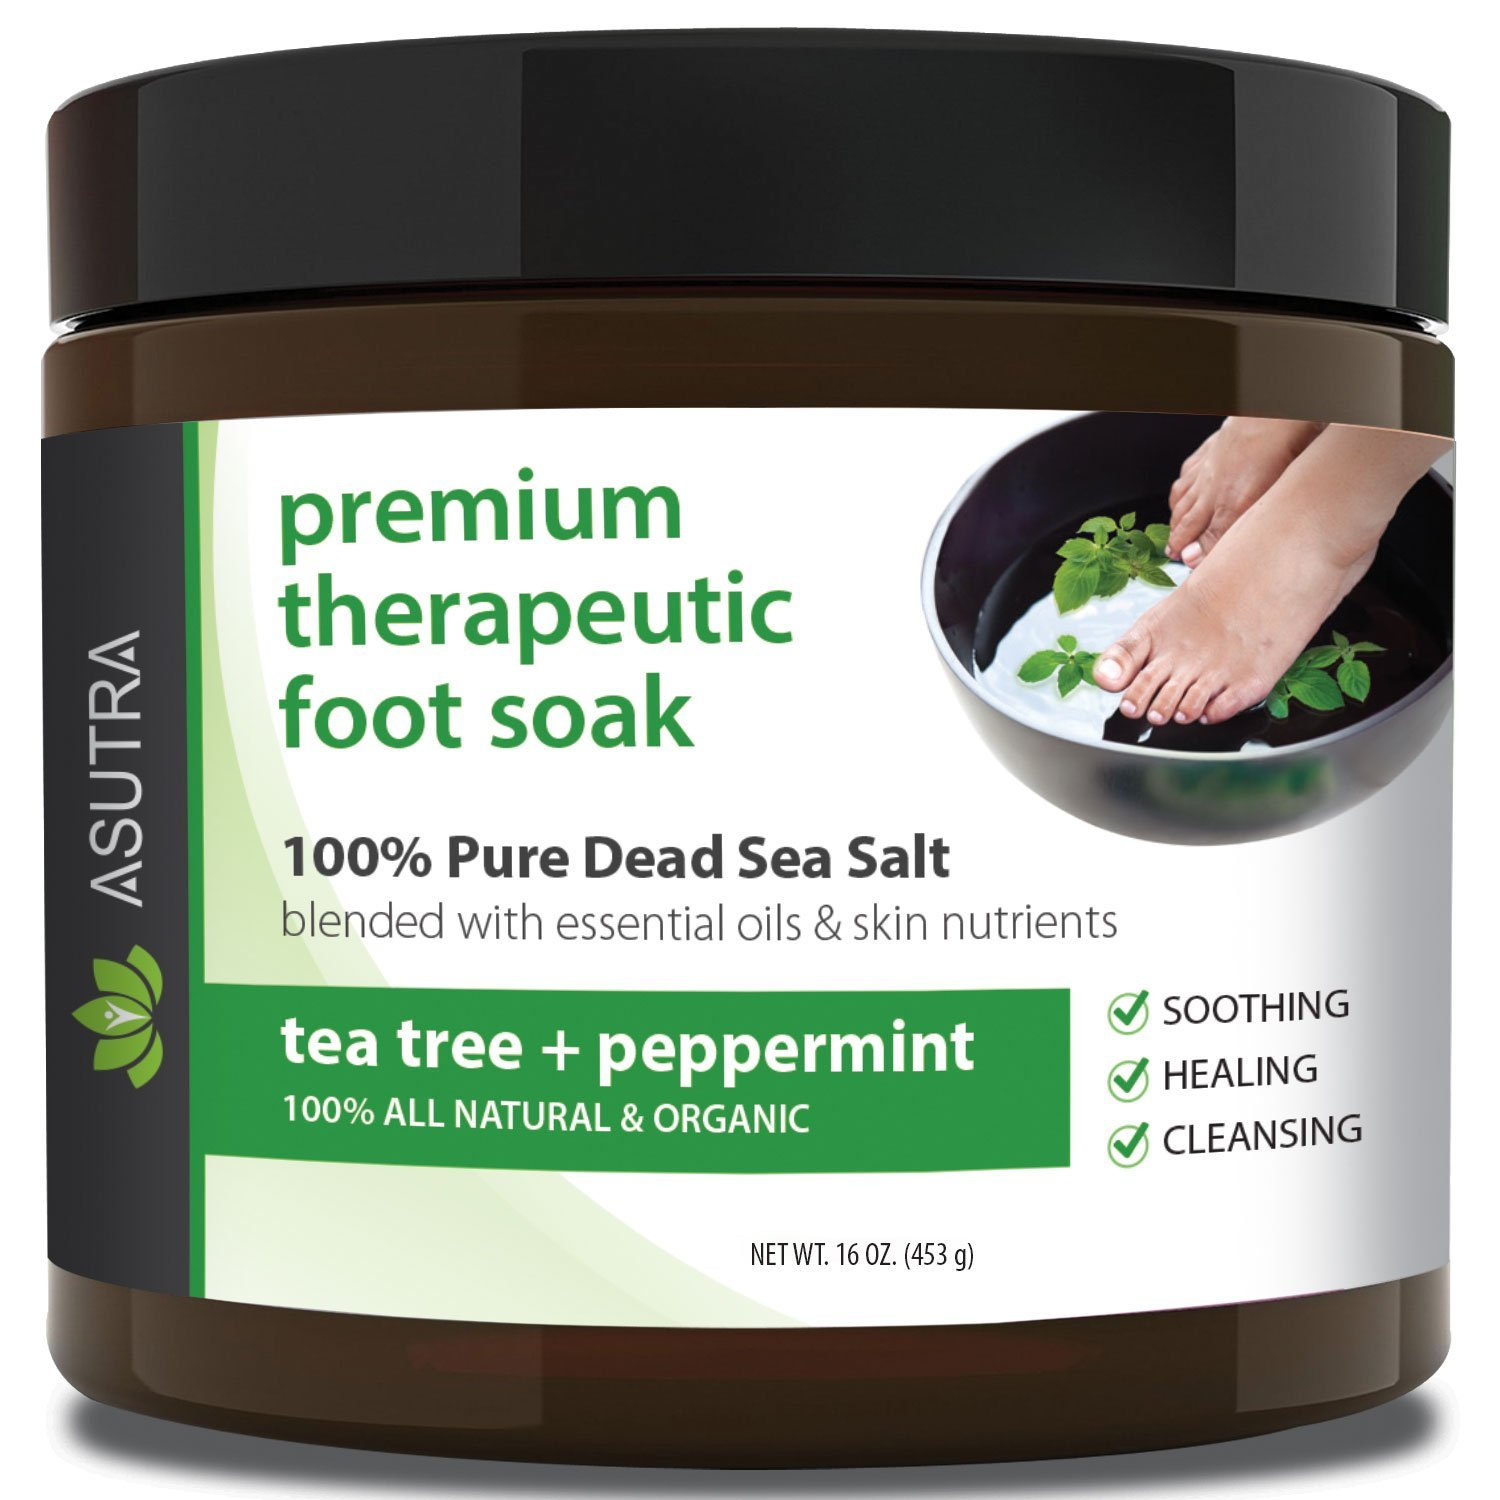 ASUTRA Premium Therapeutic Foot Soak - TEA TREE + EUCALYPTUS + Free Pedicure Pumice Stone - 100% Pure Dead Sea Salt With Skin Healing Nutrients & Organic Essential Oils - Large 16oz